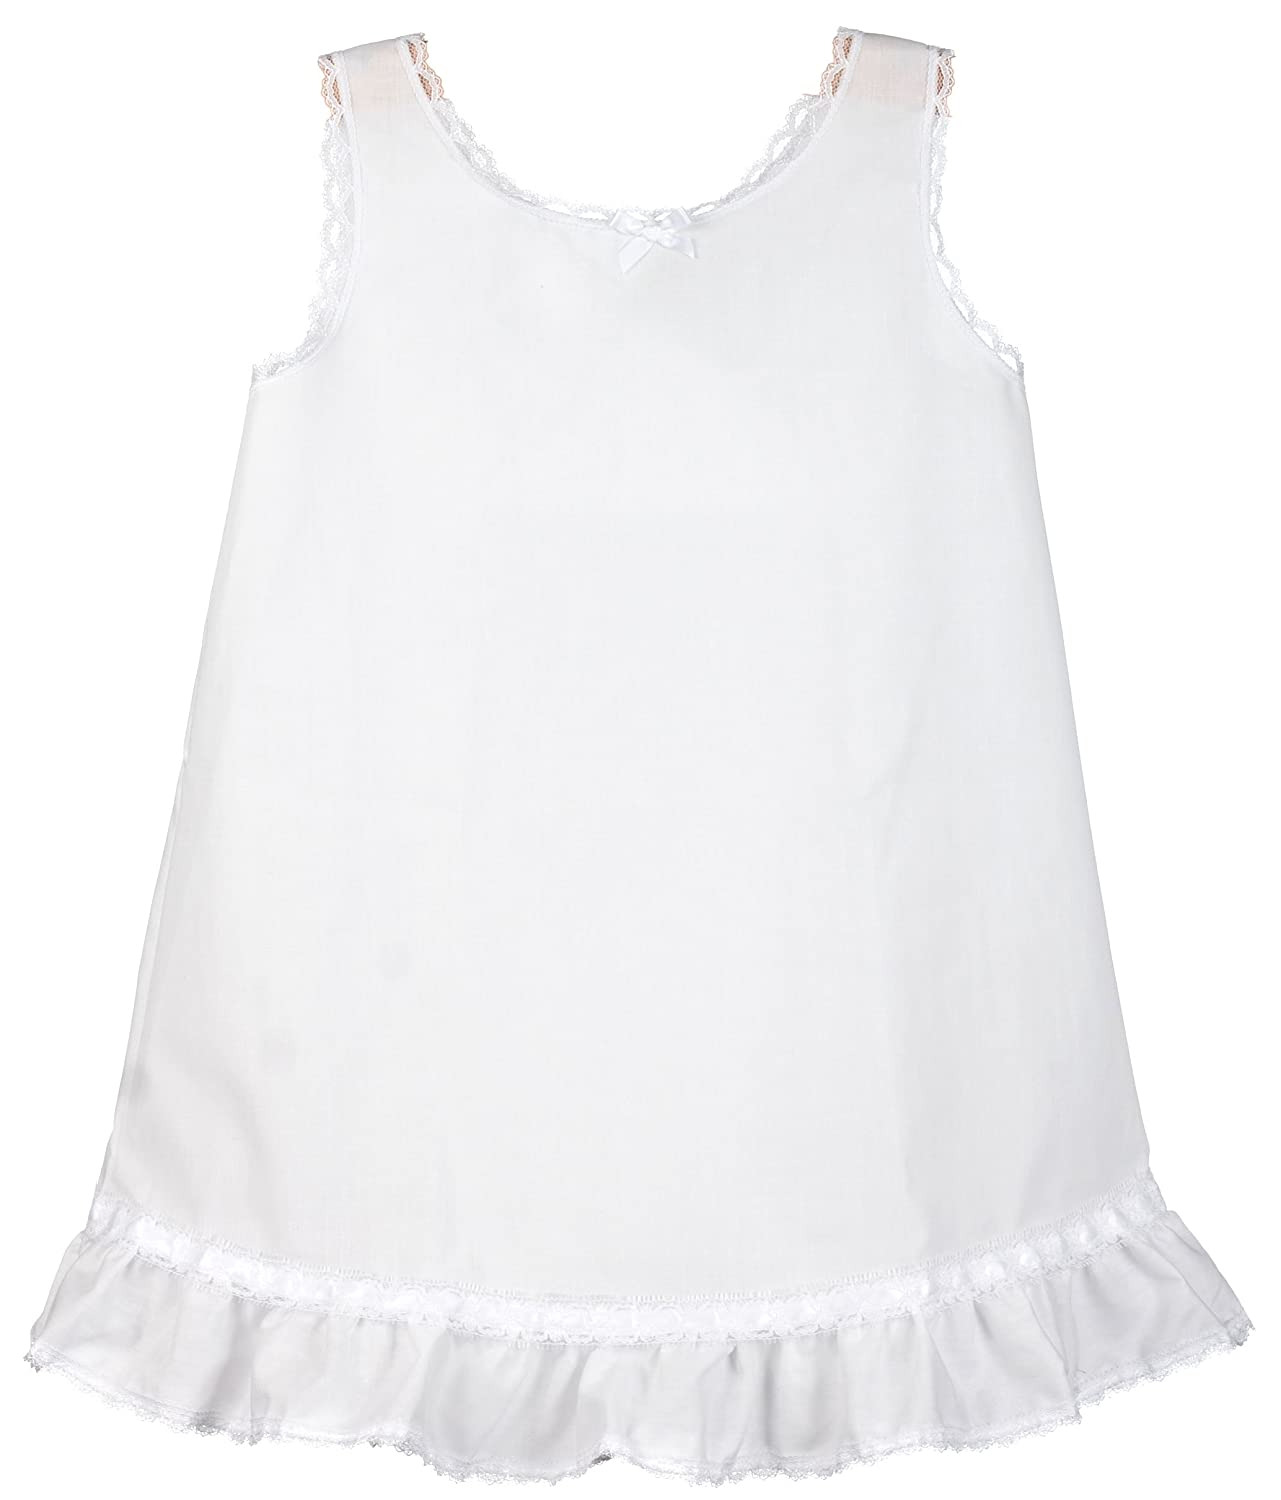 I.C. Collections Little Girls White Embellished A-Line Slip, 2T - 6x 000345-WHB